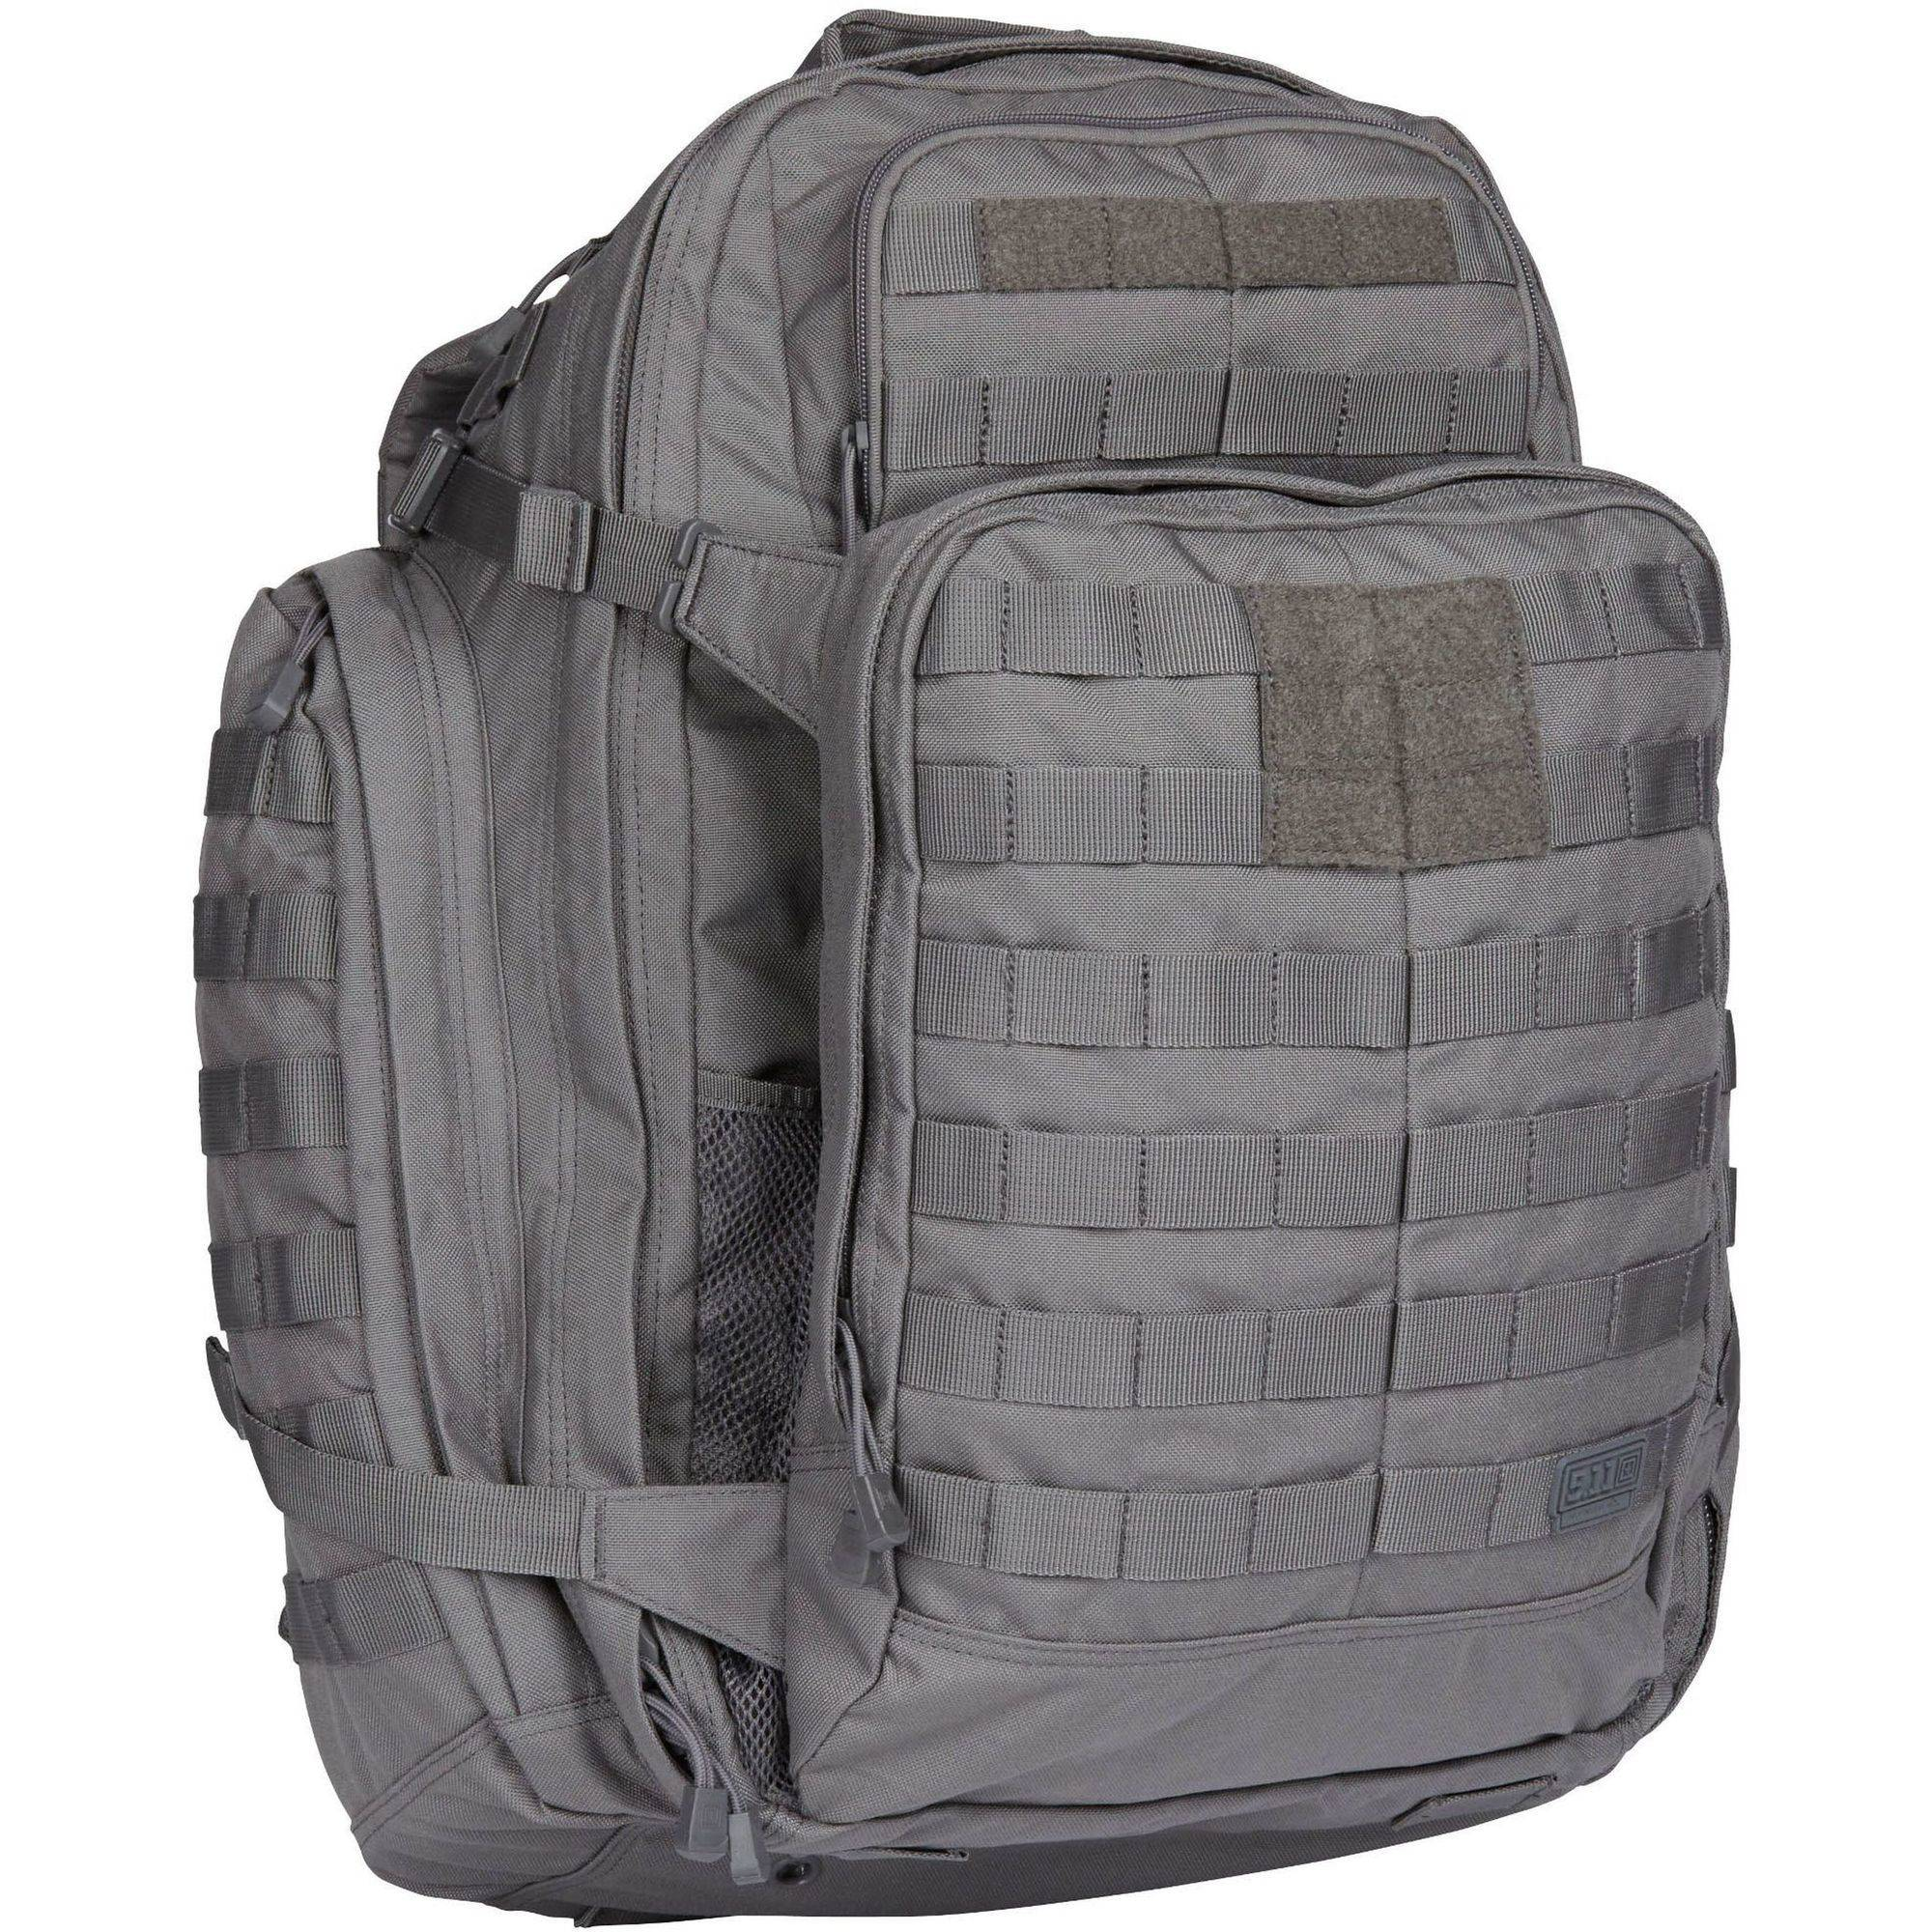 5.11 Tactical RUSH72 Backpack